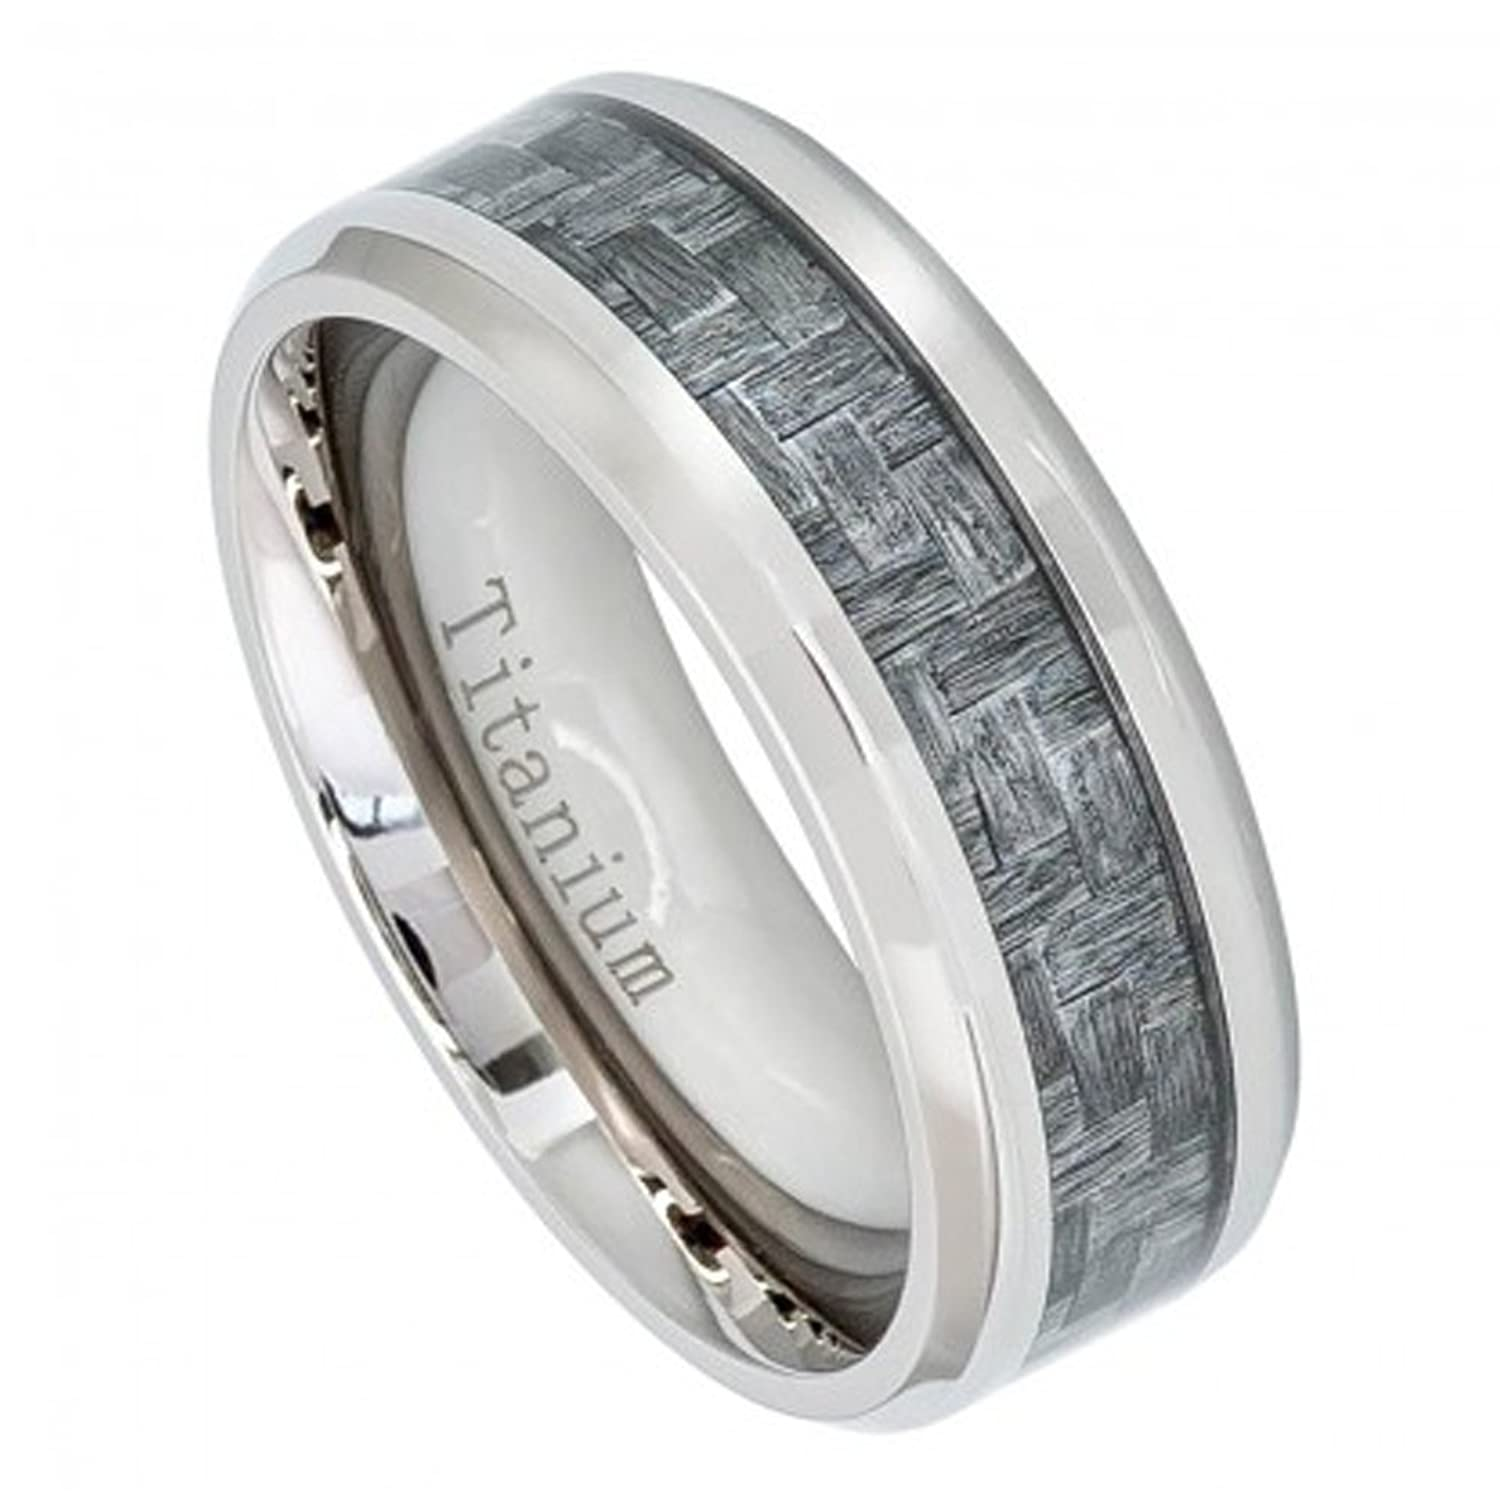 8mm titanium wedding band ring with charcoal gray carbon fiber